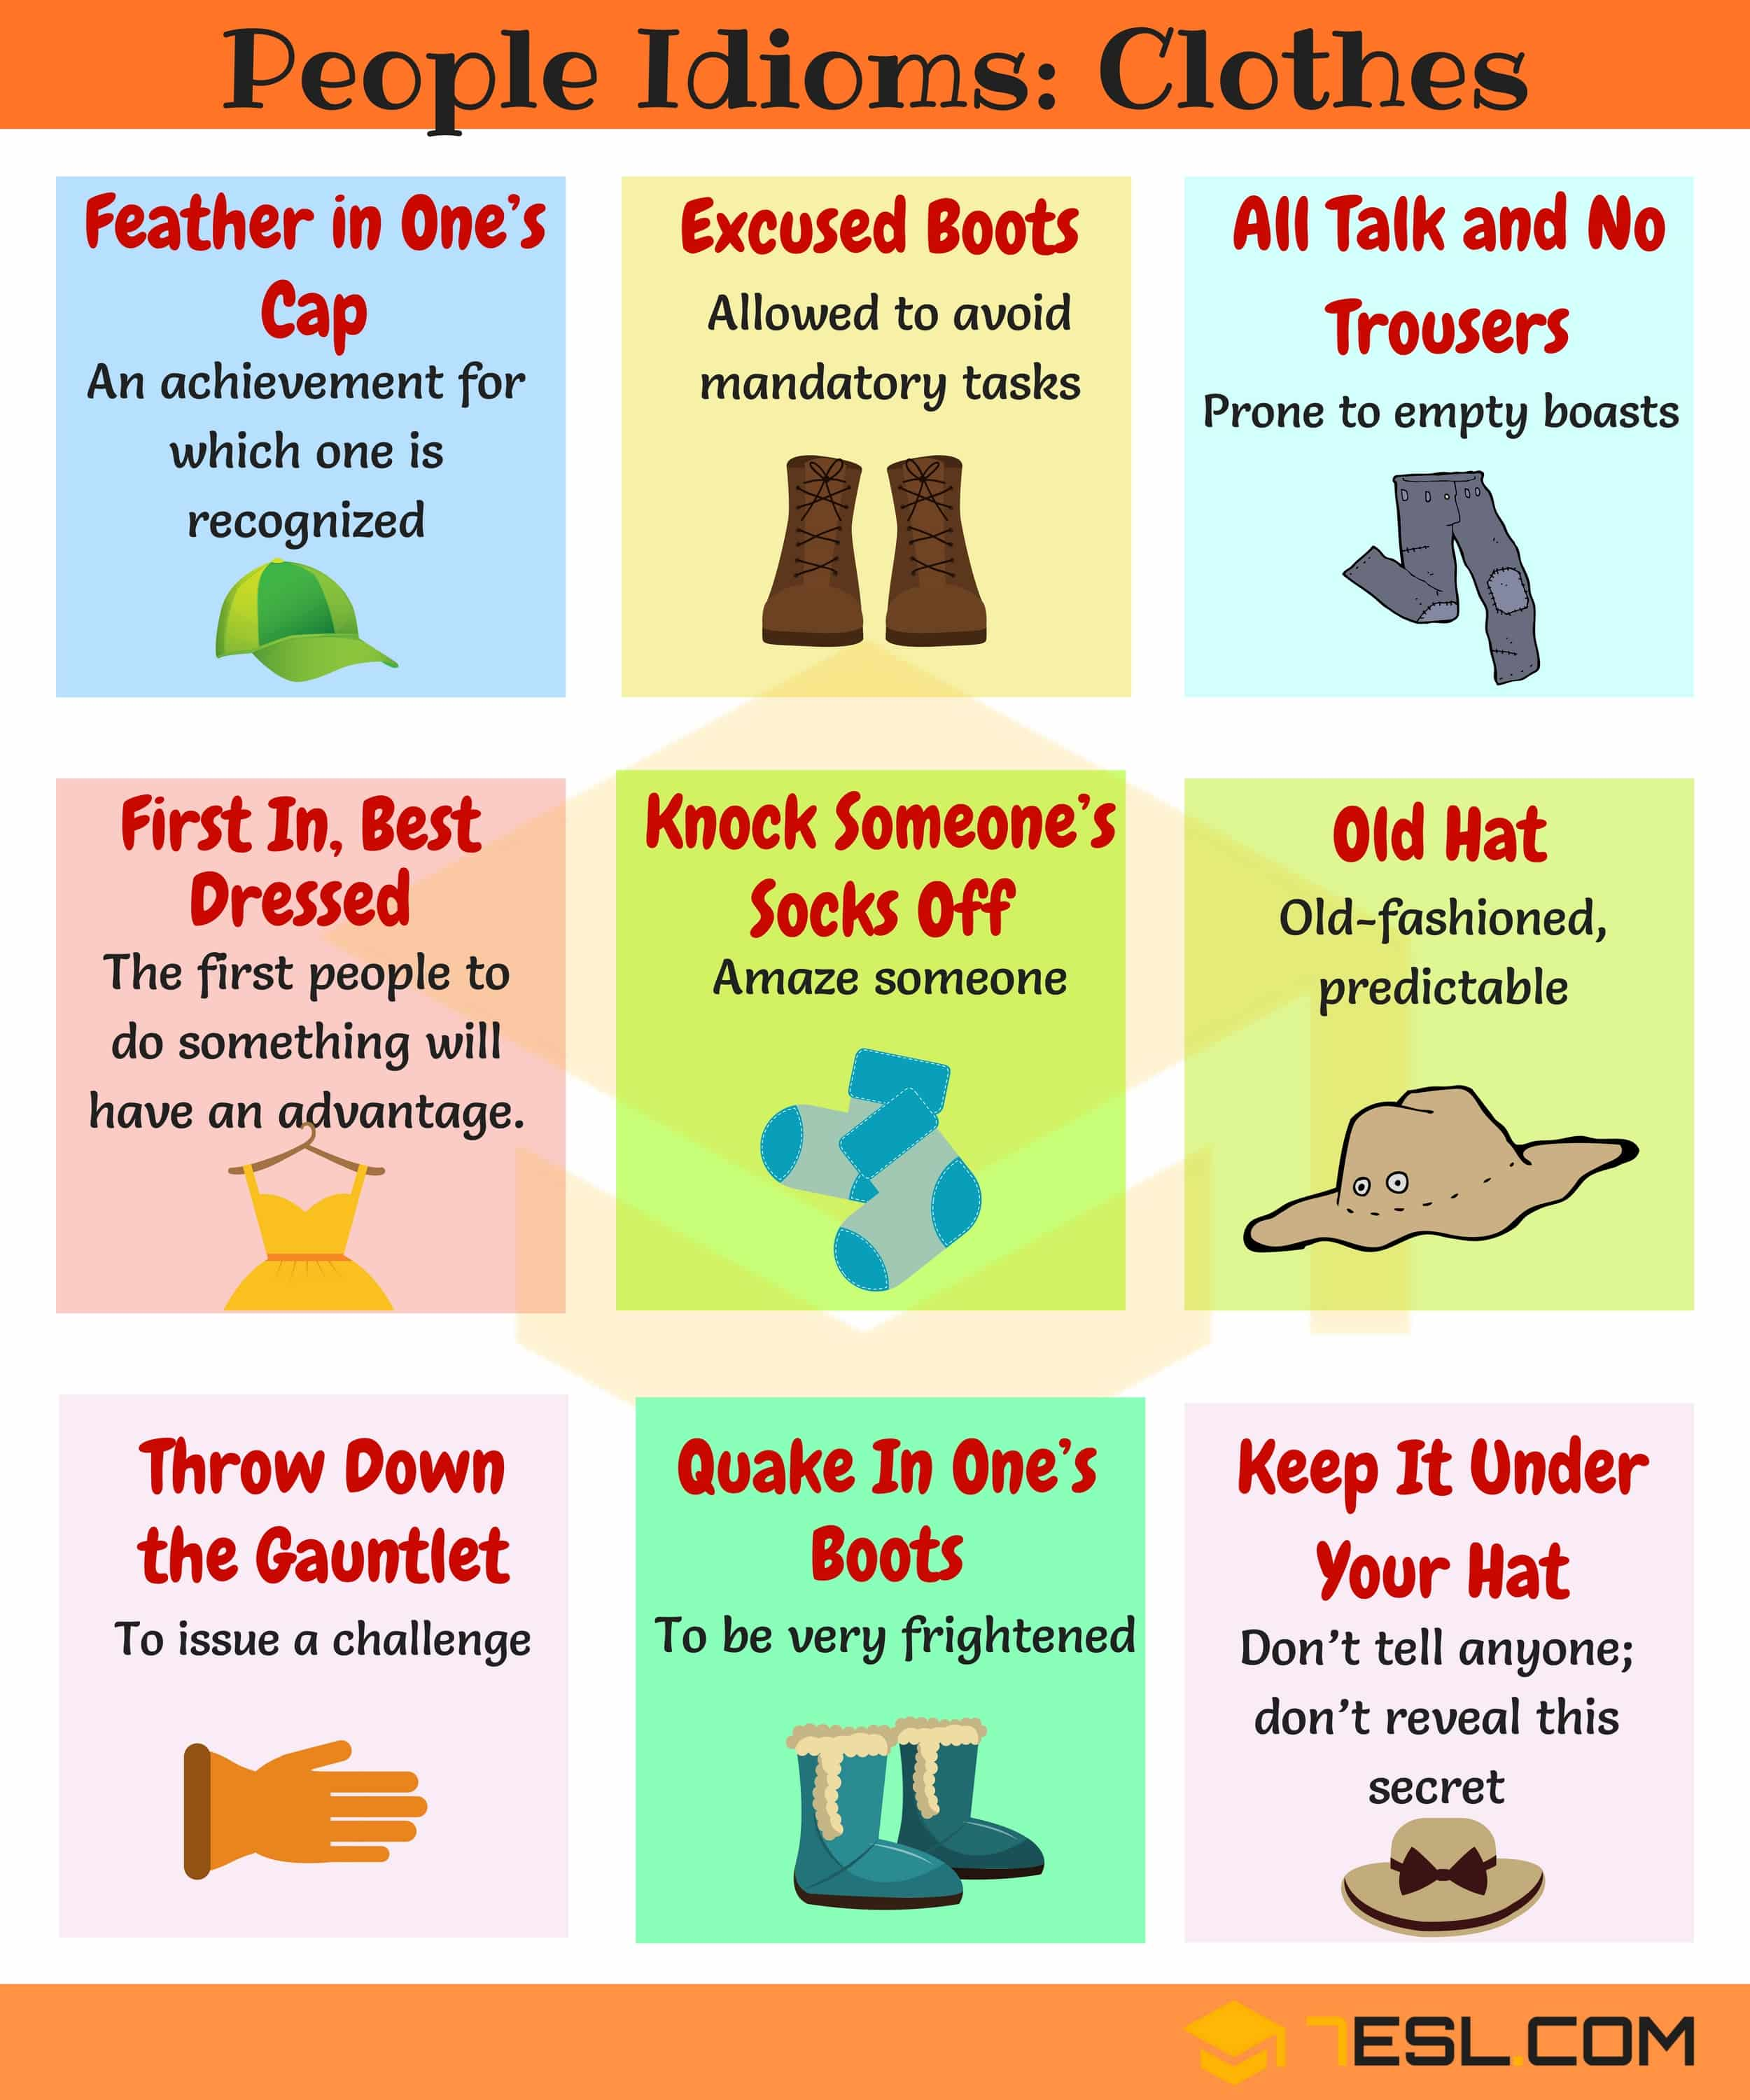 Commonly Used Clothes Idioms in English